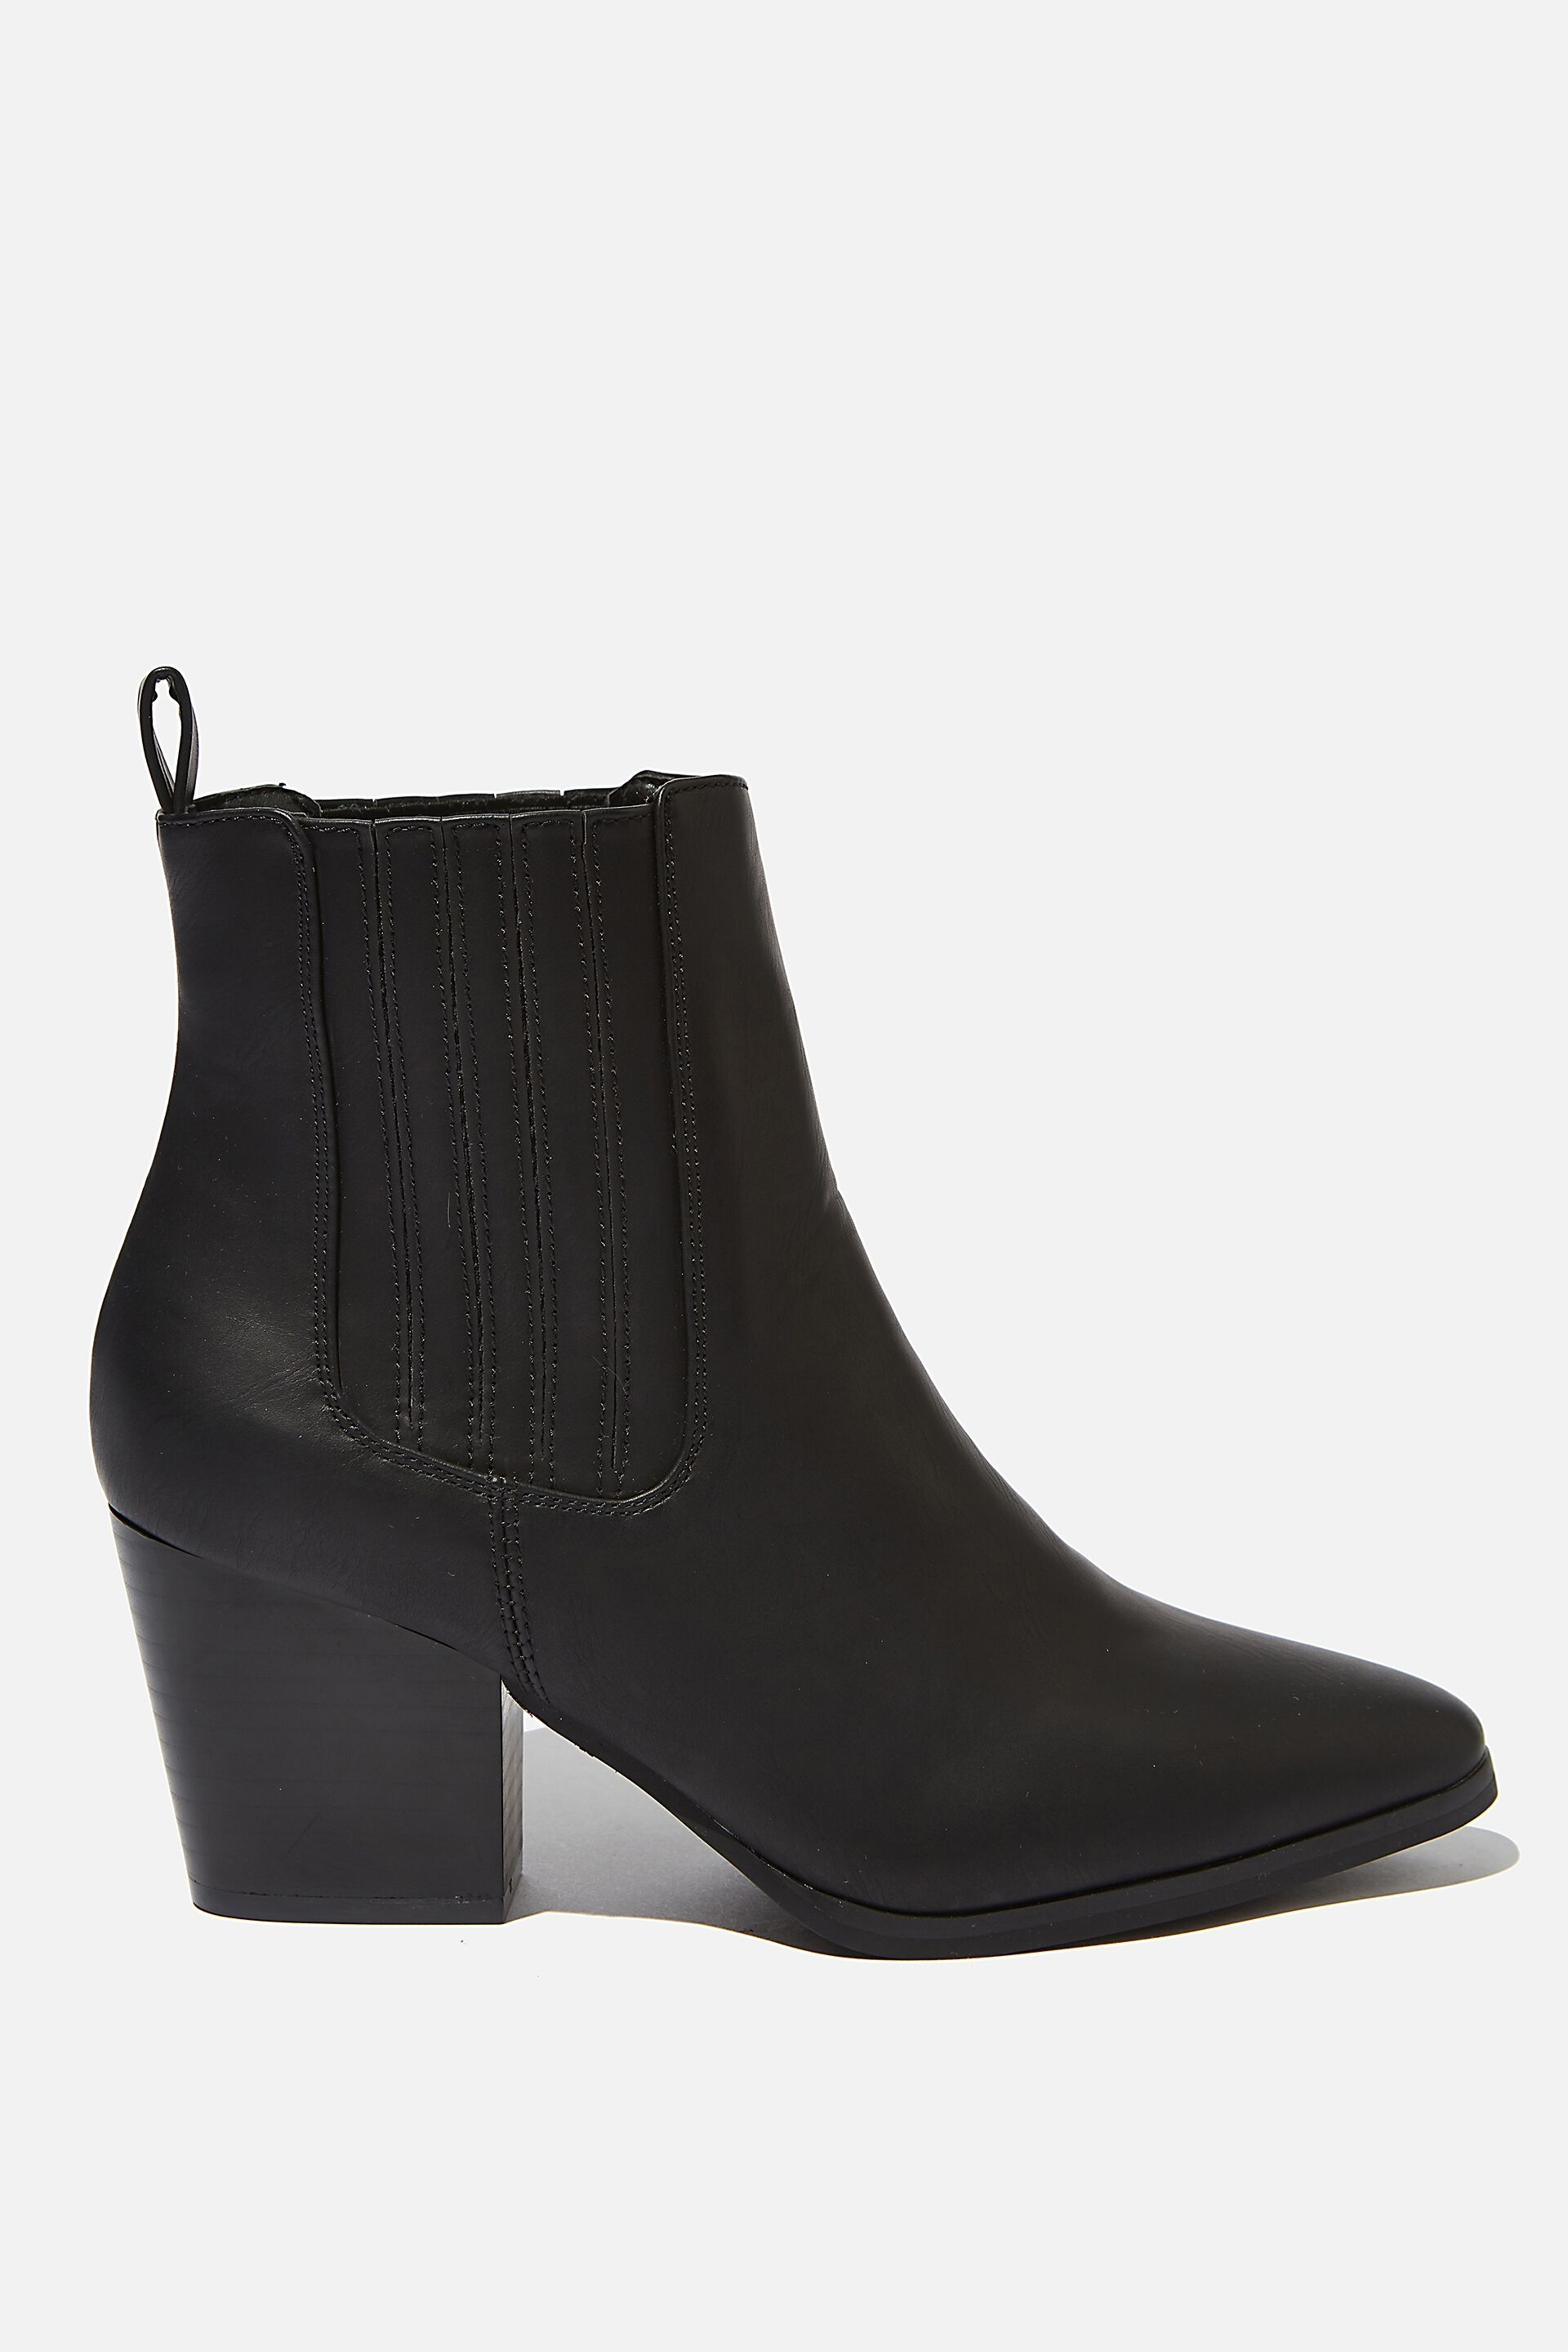 Women's Shoes Boots Offer